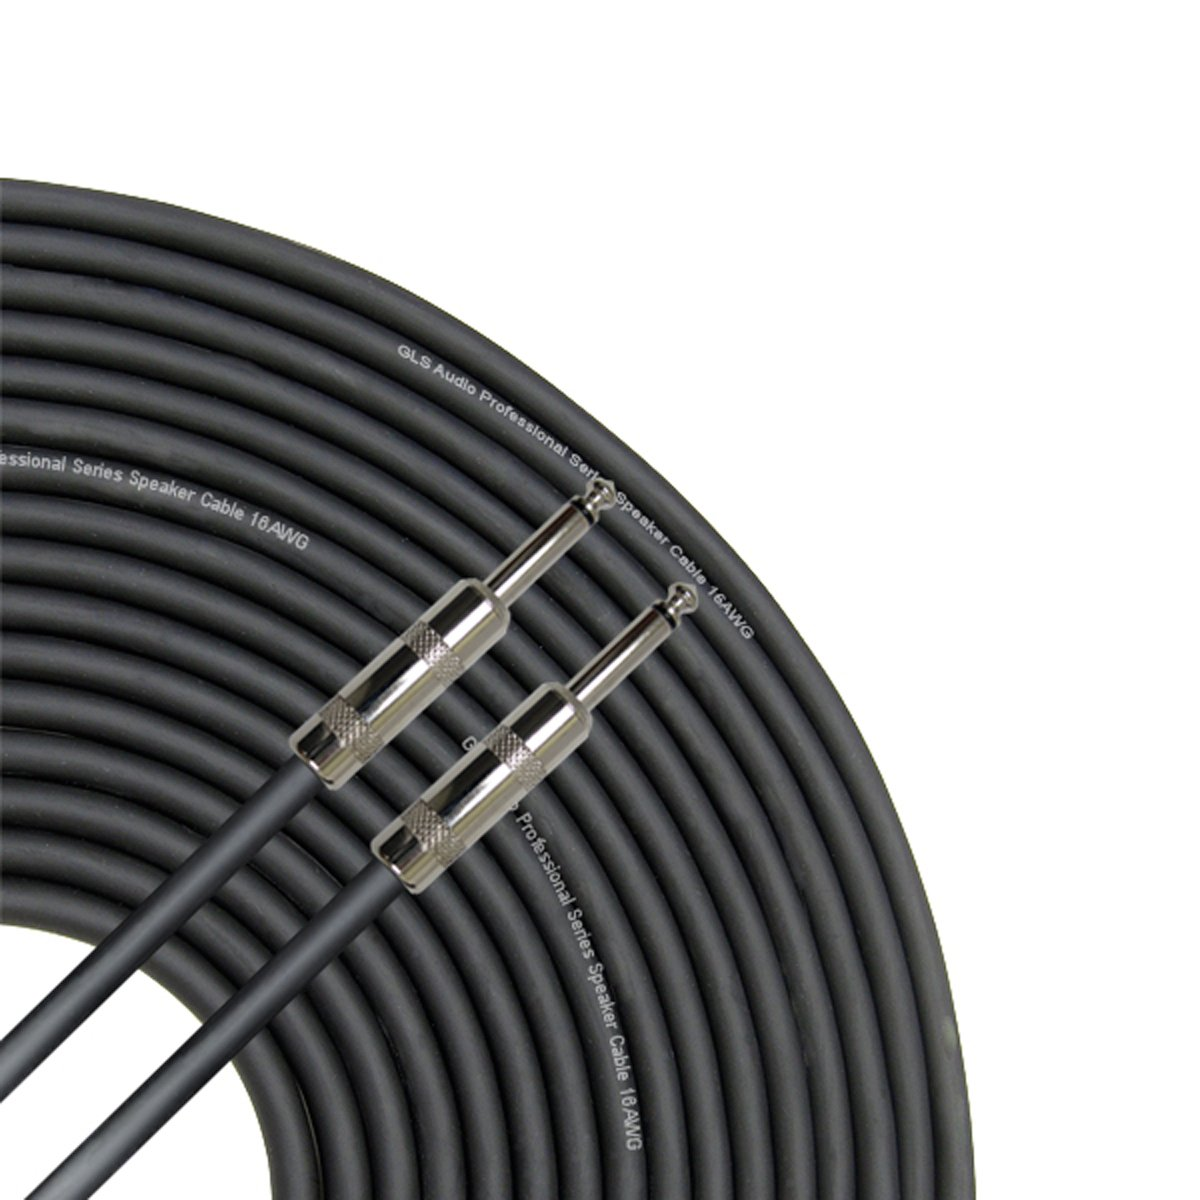 GLS Audio 100 Feet Speaker Cable 16AWG Patch Cords - 100 ft 1/4 Inch to 1/4 Inch Professional Speaker Cables 100 Foot Black 16 Gauge Wire - Pro 100' Phono 6.3mm Cord 16G - Single by GLS Audio